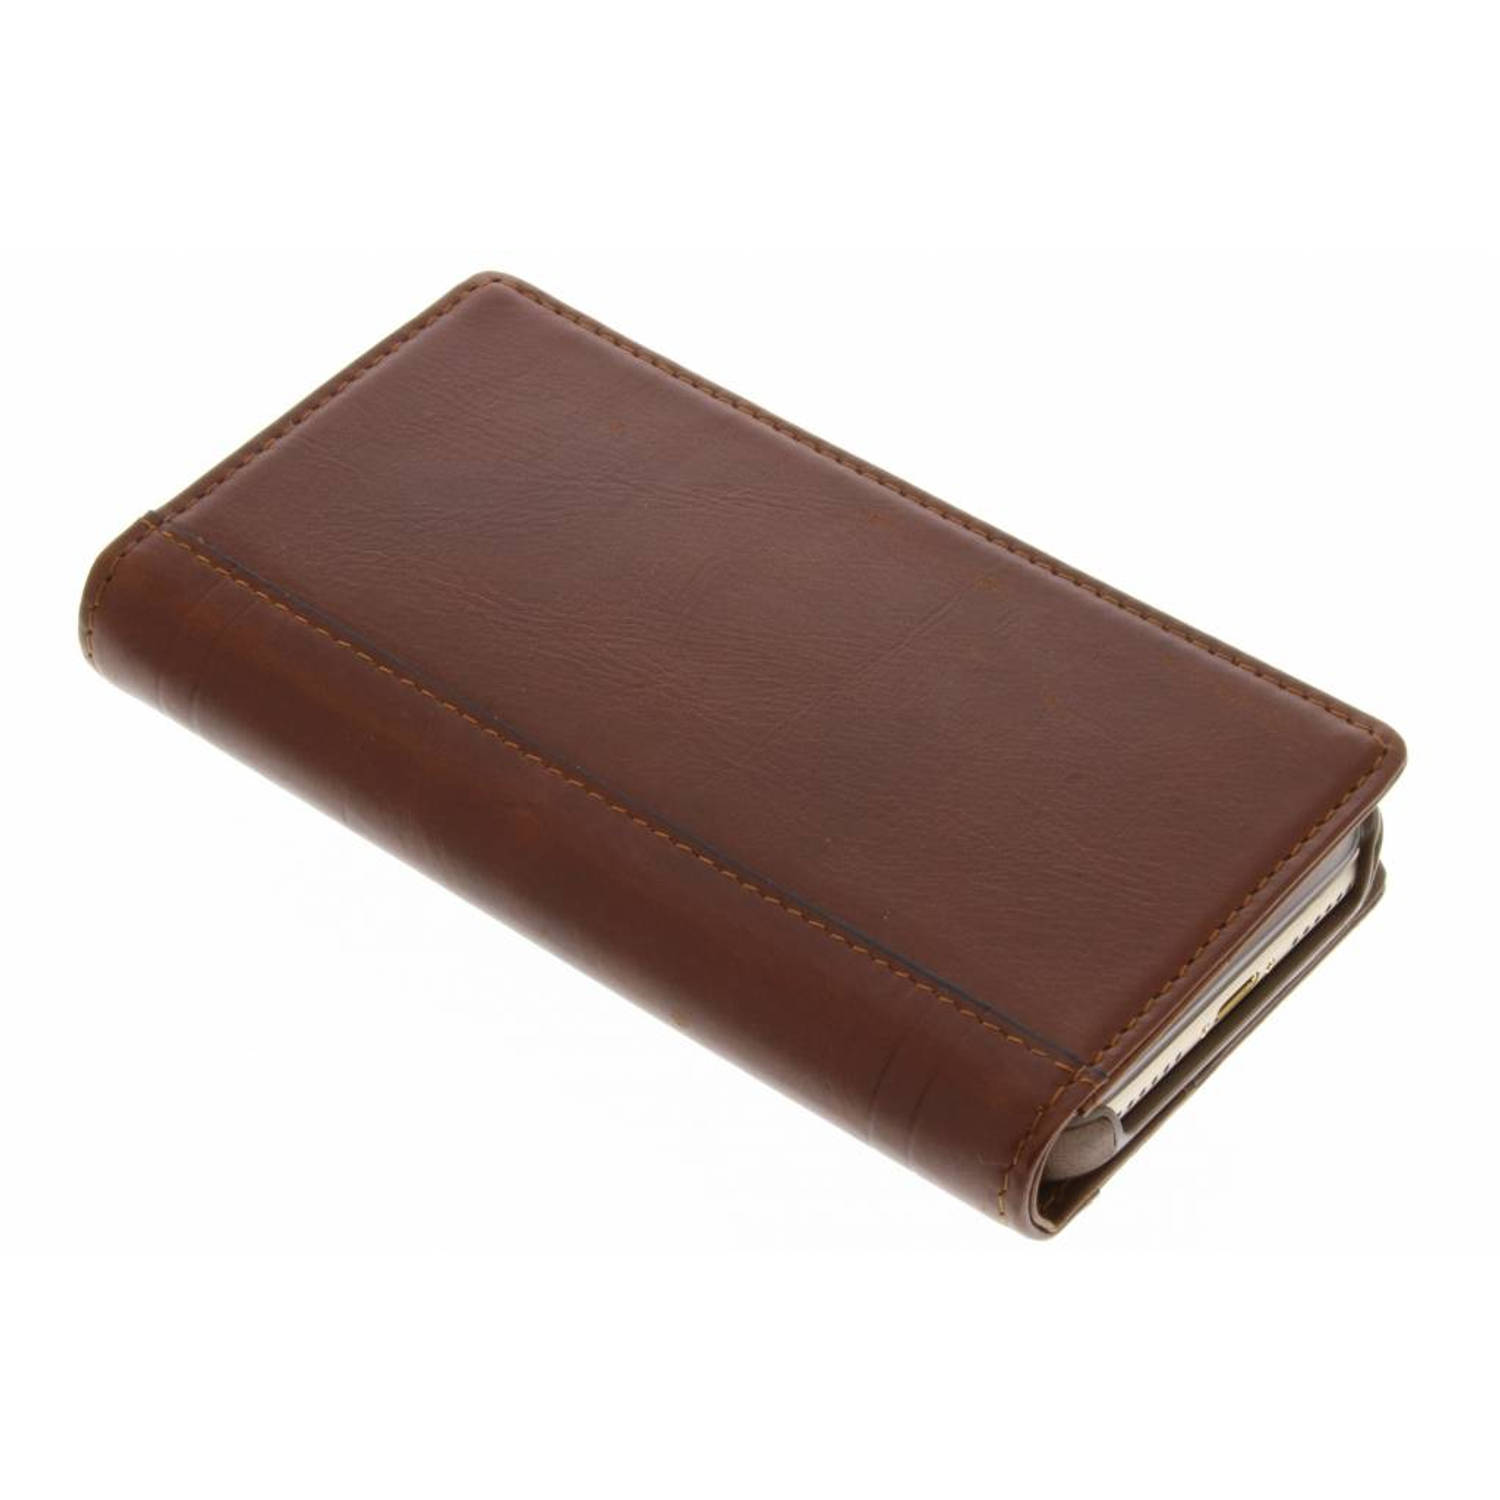 Journal Wallet Case voor de iPhone 8 / 7 - Cognac